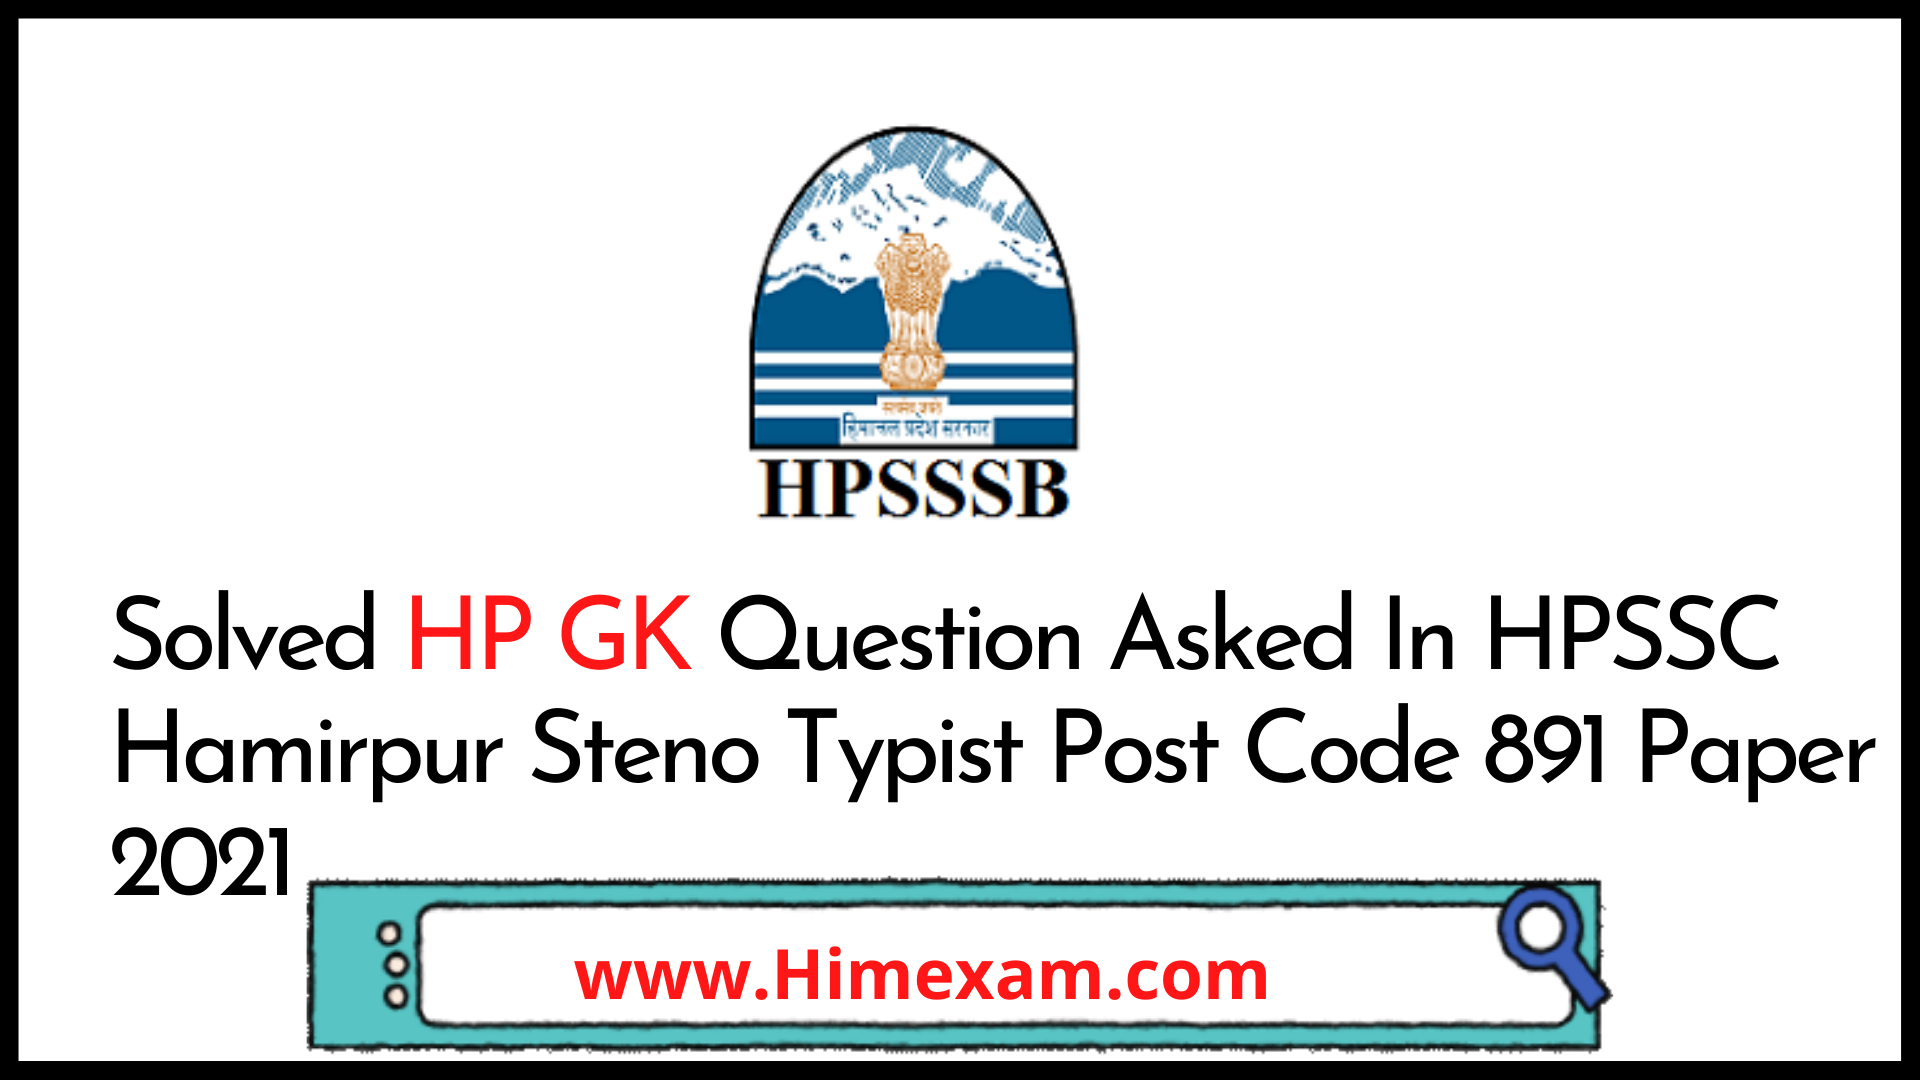 Solved HP GK Question Asked In HPSSC Hamirpur Steno Typist Post Code 891 Paper 2021